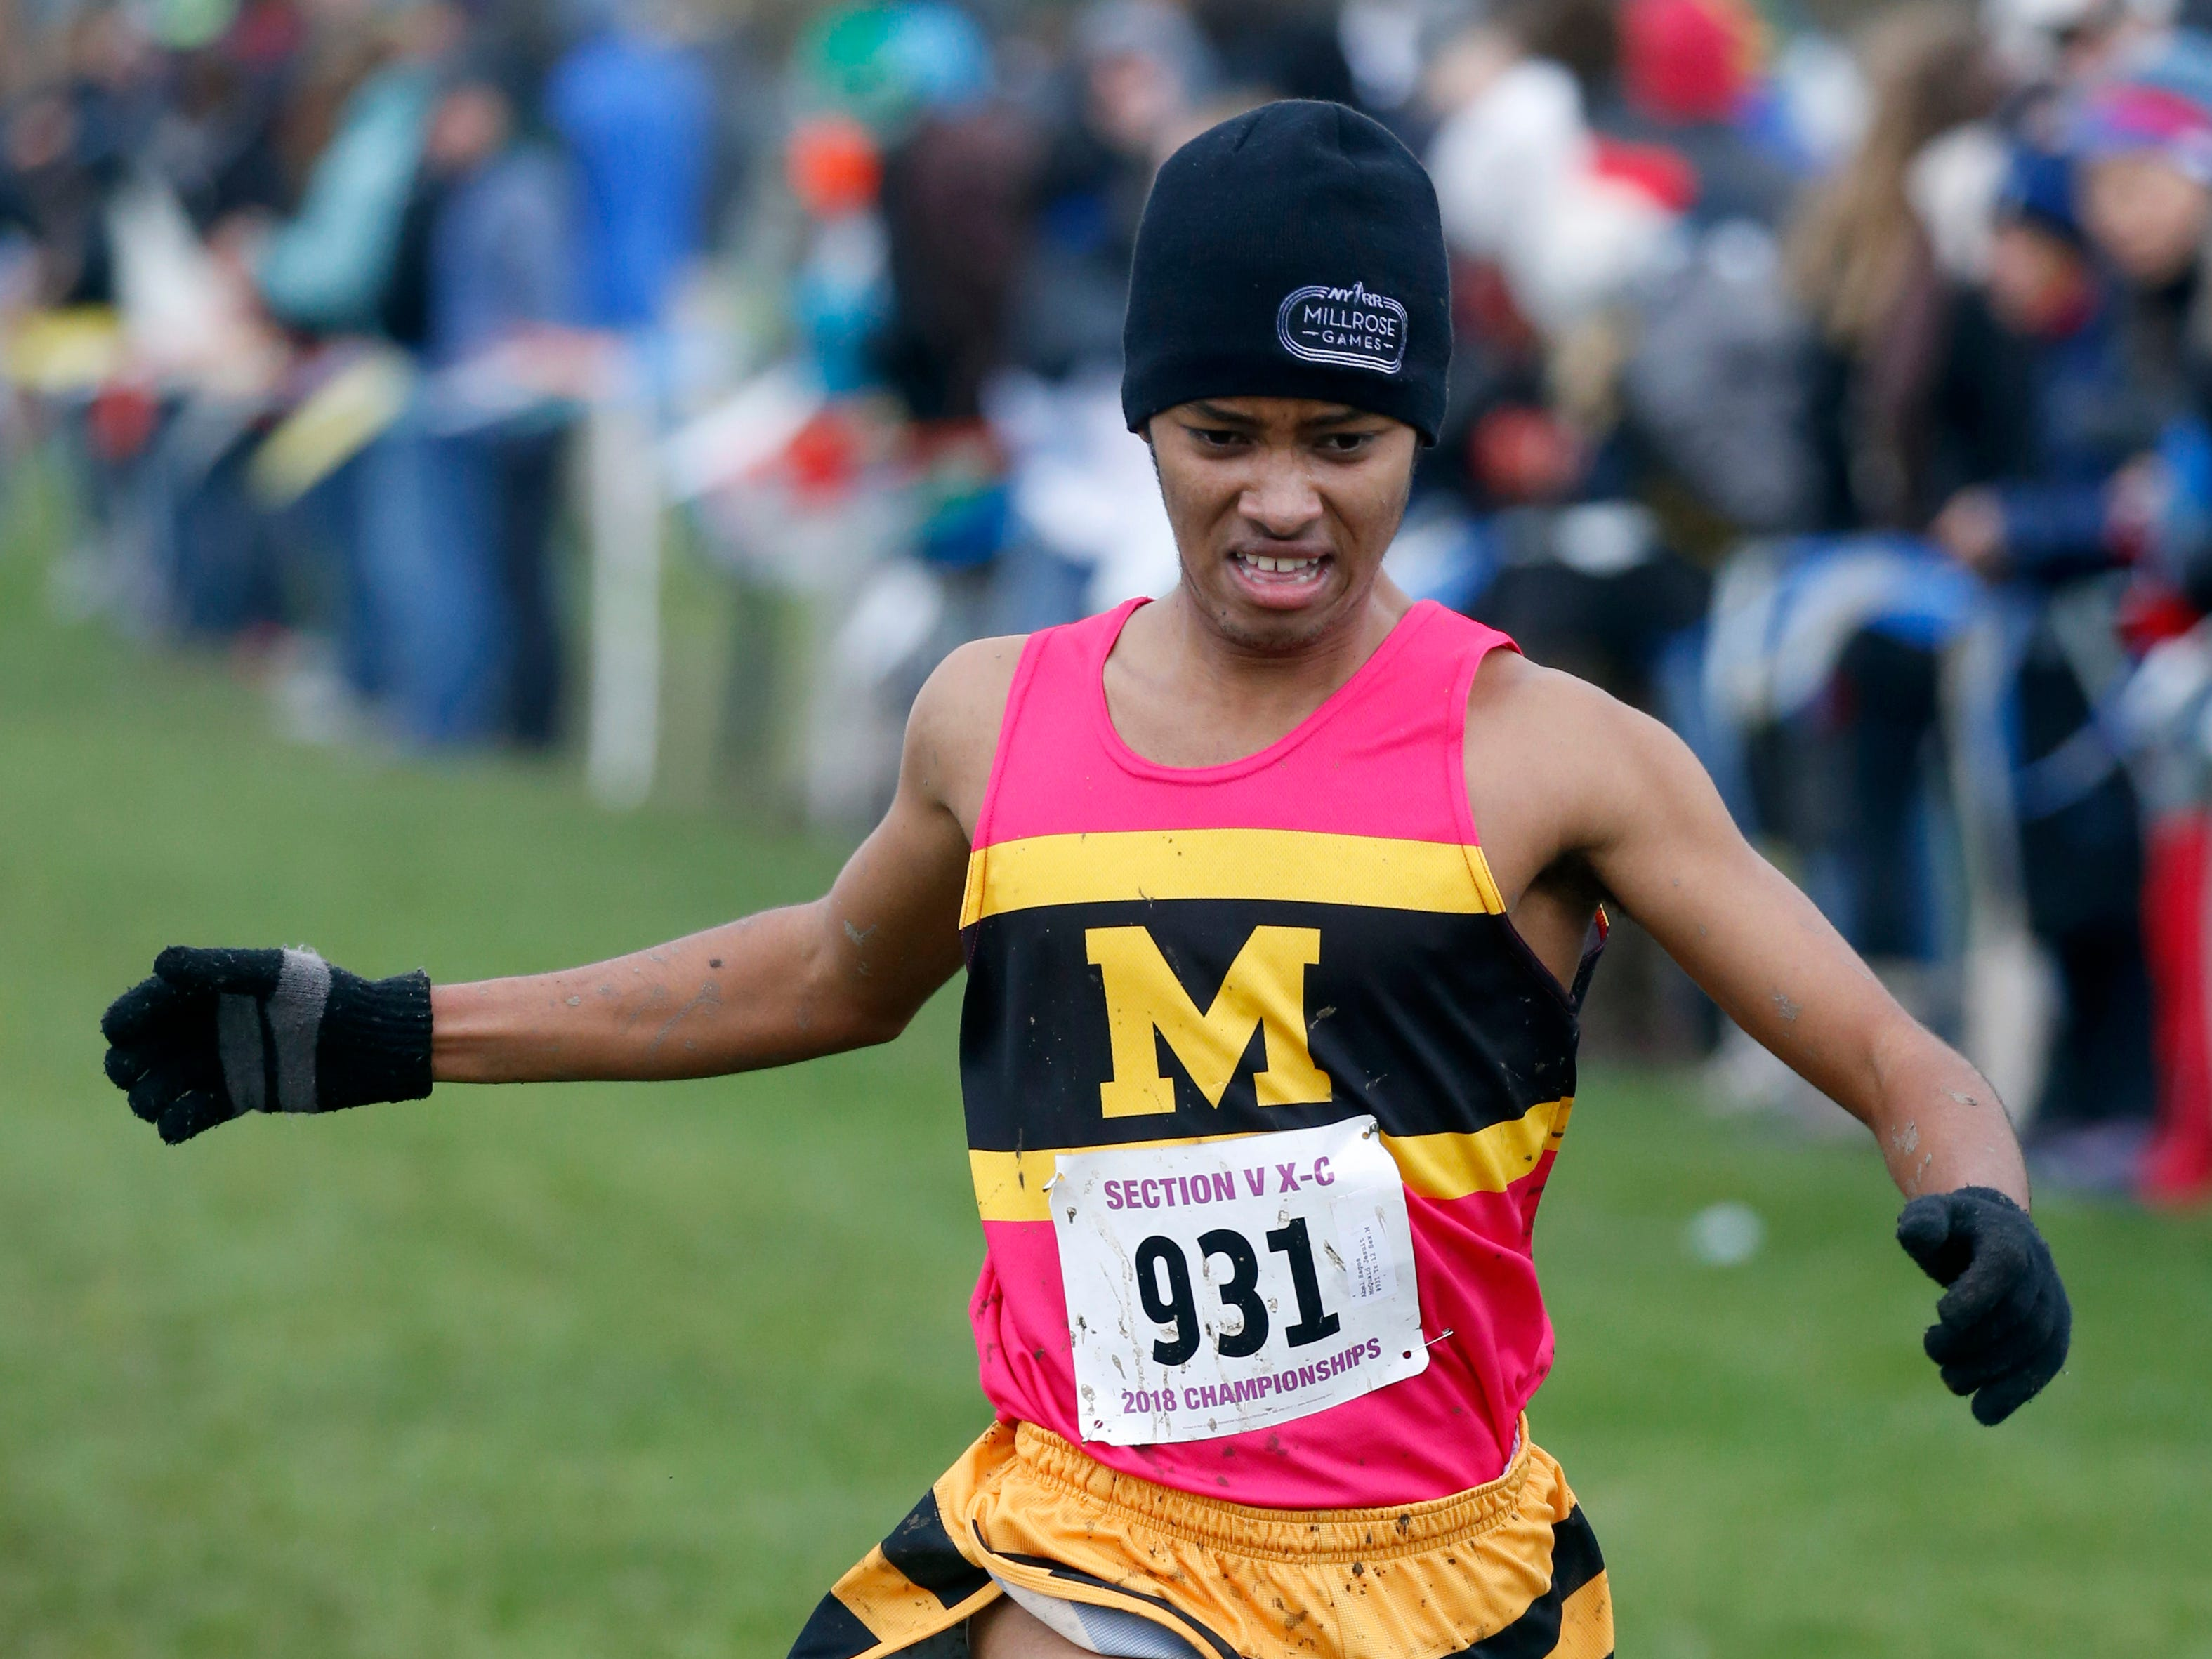 Boys Class A: The winner was McQuaid Jesuit's Abel Hagos with a time of 16:31.5 during the Section V Cross Country meet at Midlakes High School.